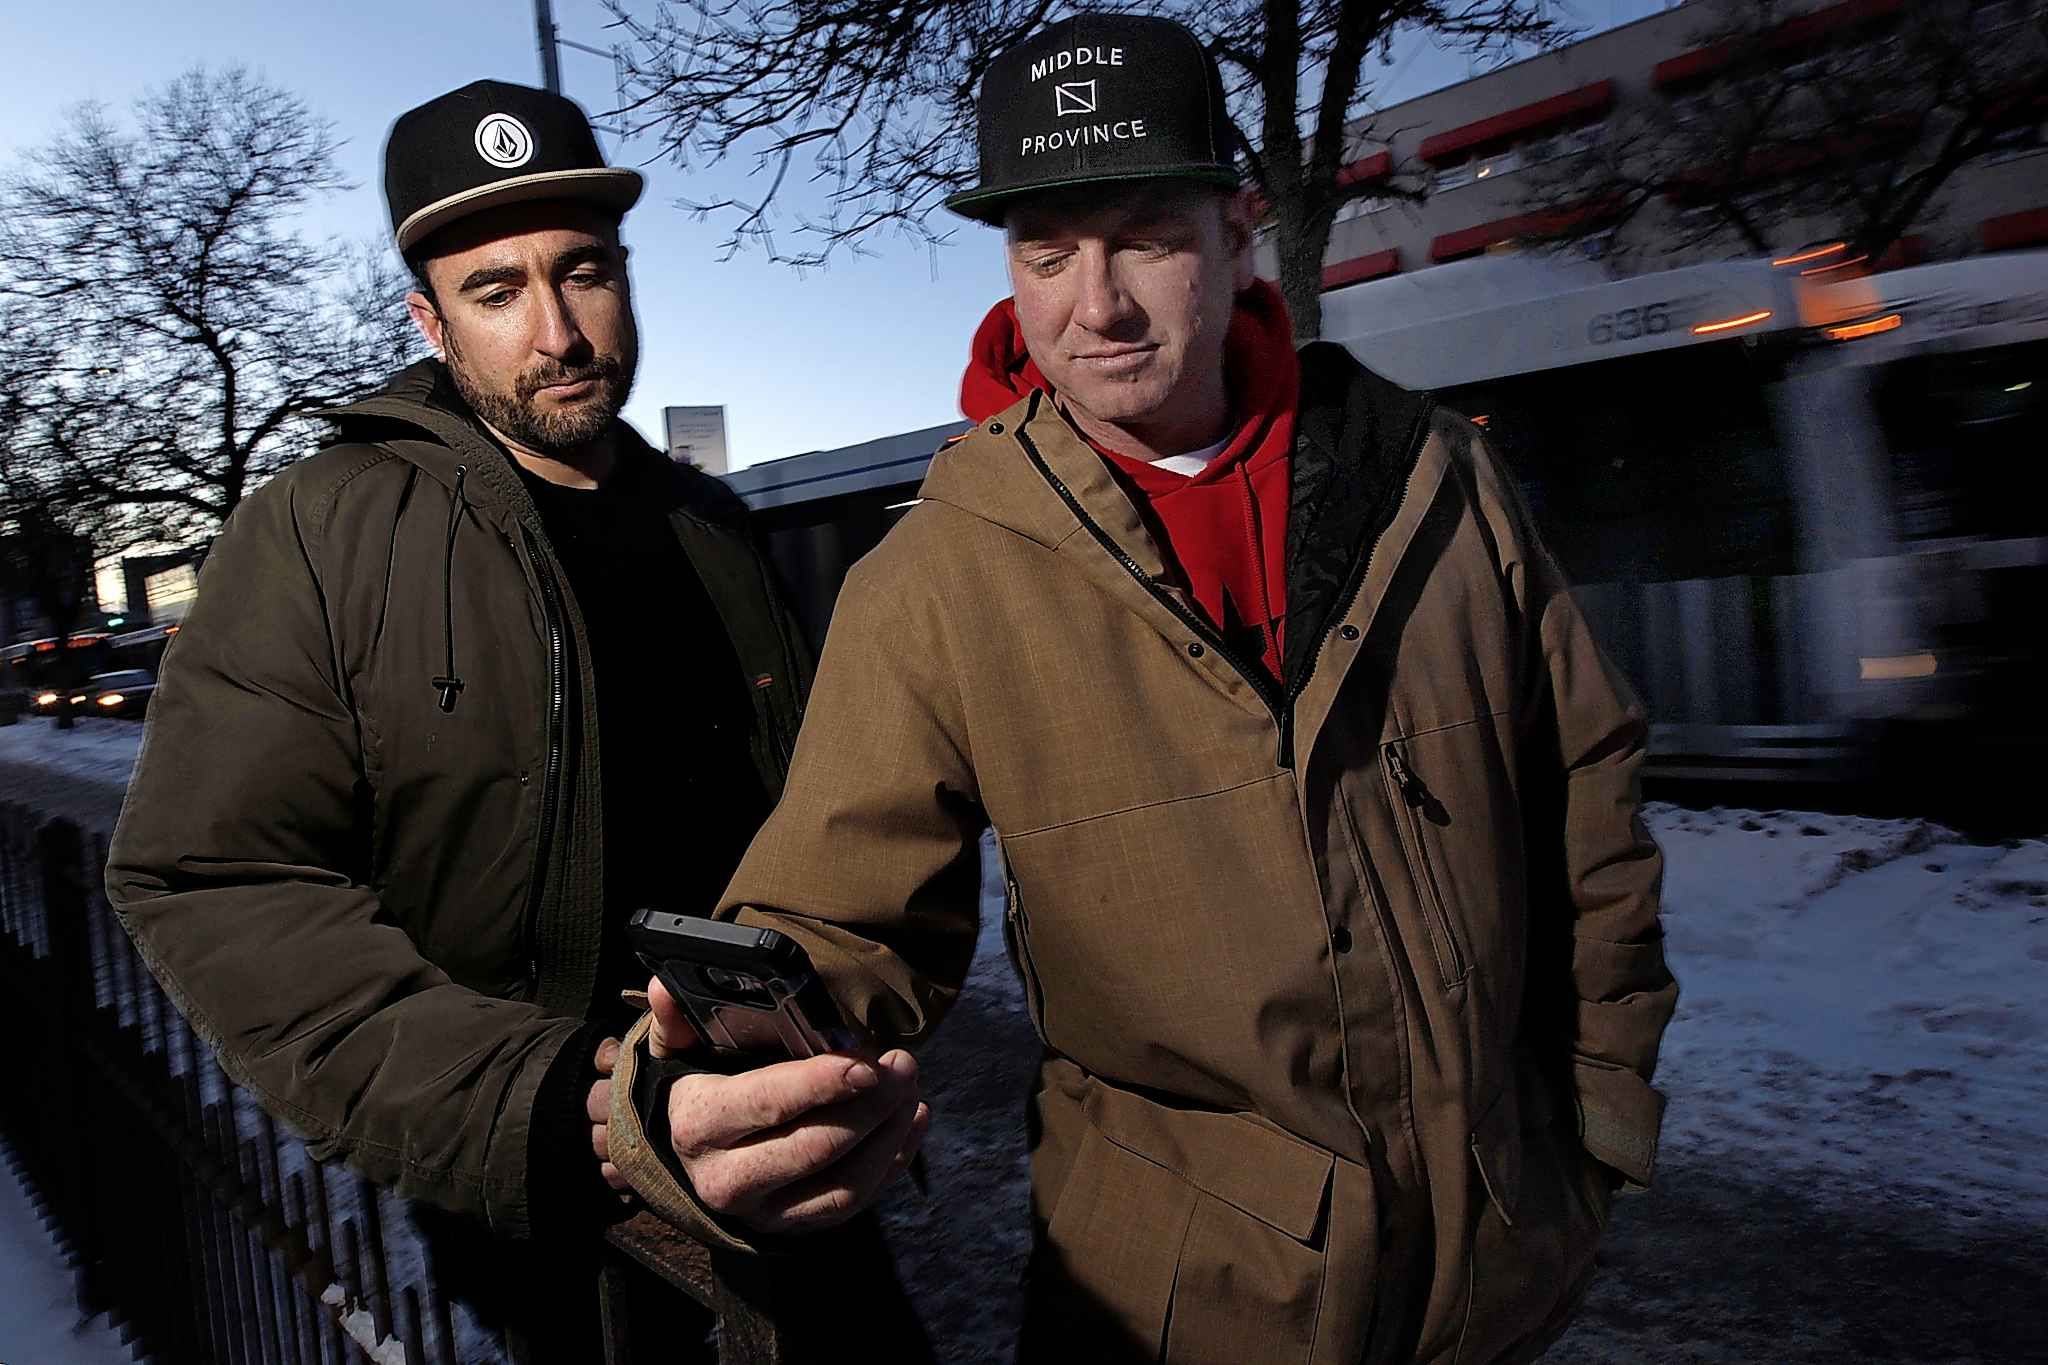 Dane Bourget (right) and Robert Lidstone are founders of a volunteer hotline called Jib Stop.